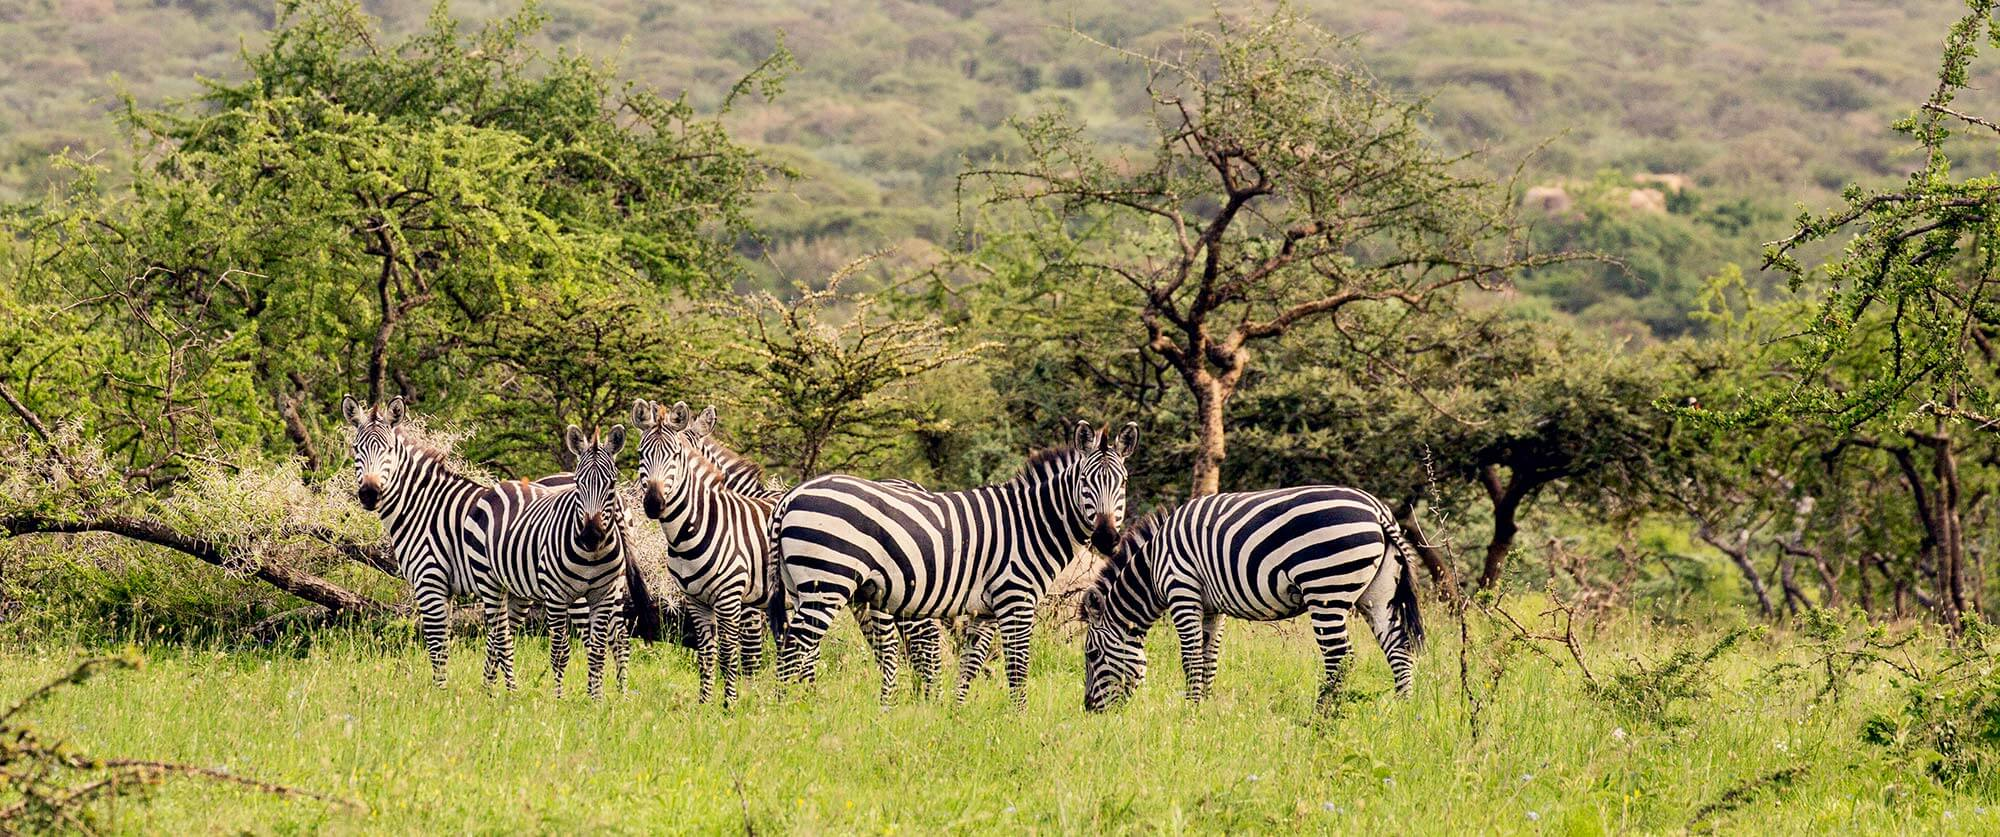 Zebras on Mwiba Wildlife Reserve - Serengeti Safari - Tanzania Safari Tours: Ultimate Northern Circuit Package